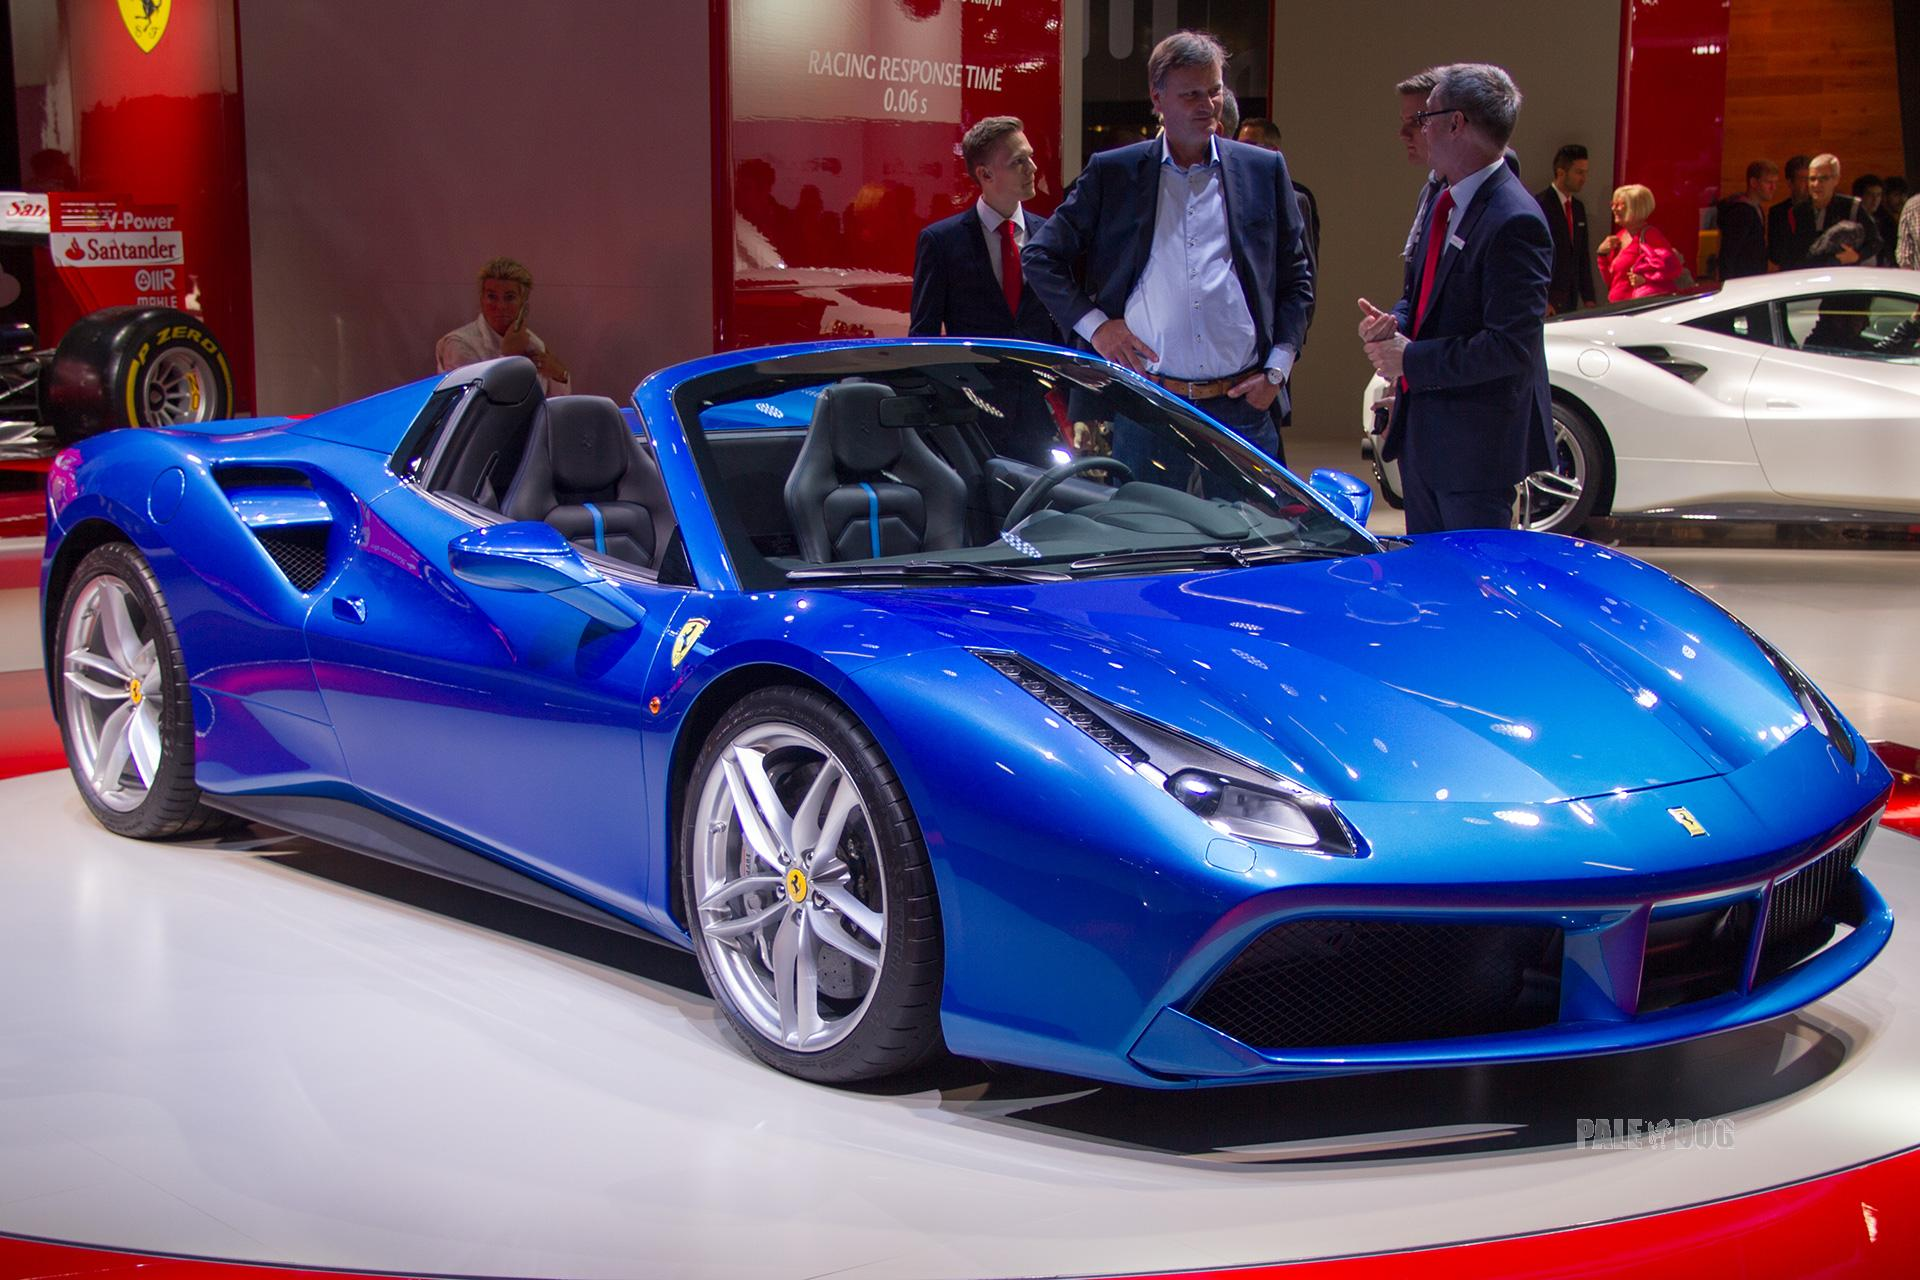 2015 Ferrari 488 Spider Front View 2010s Paledog Photo Collection